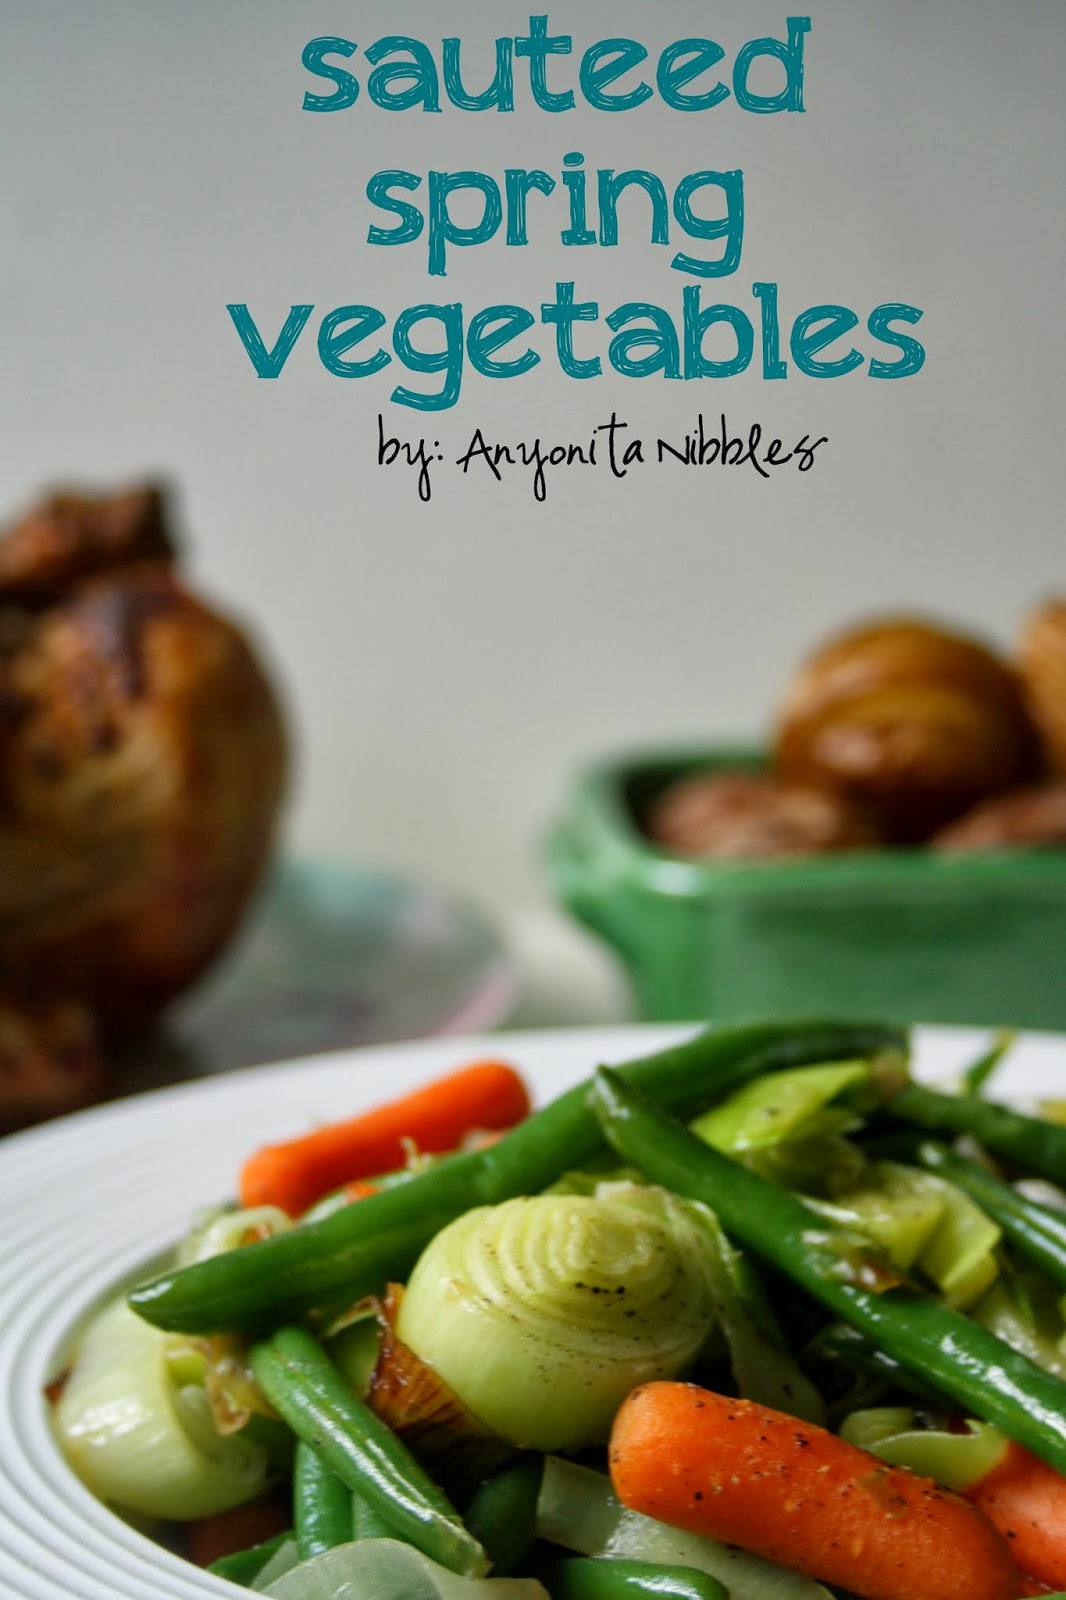 Fresh, sauteed spring vegetables for Mother's Day | Anyonita Nibbles